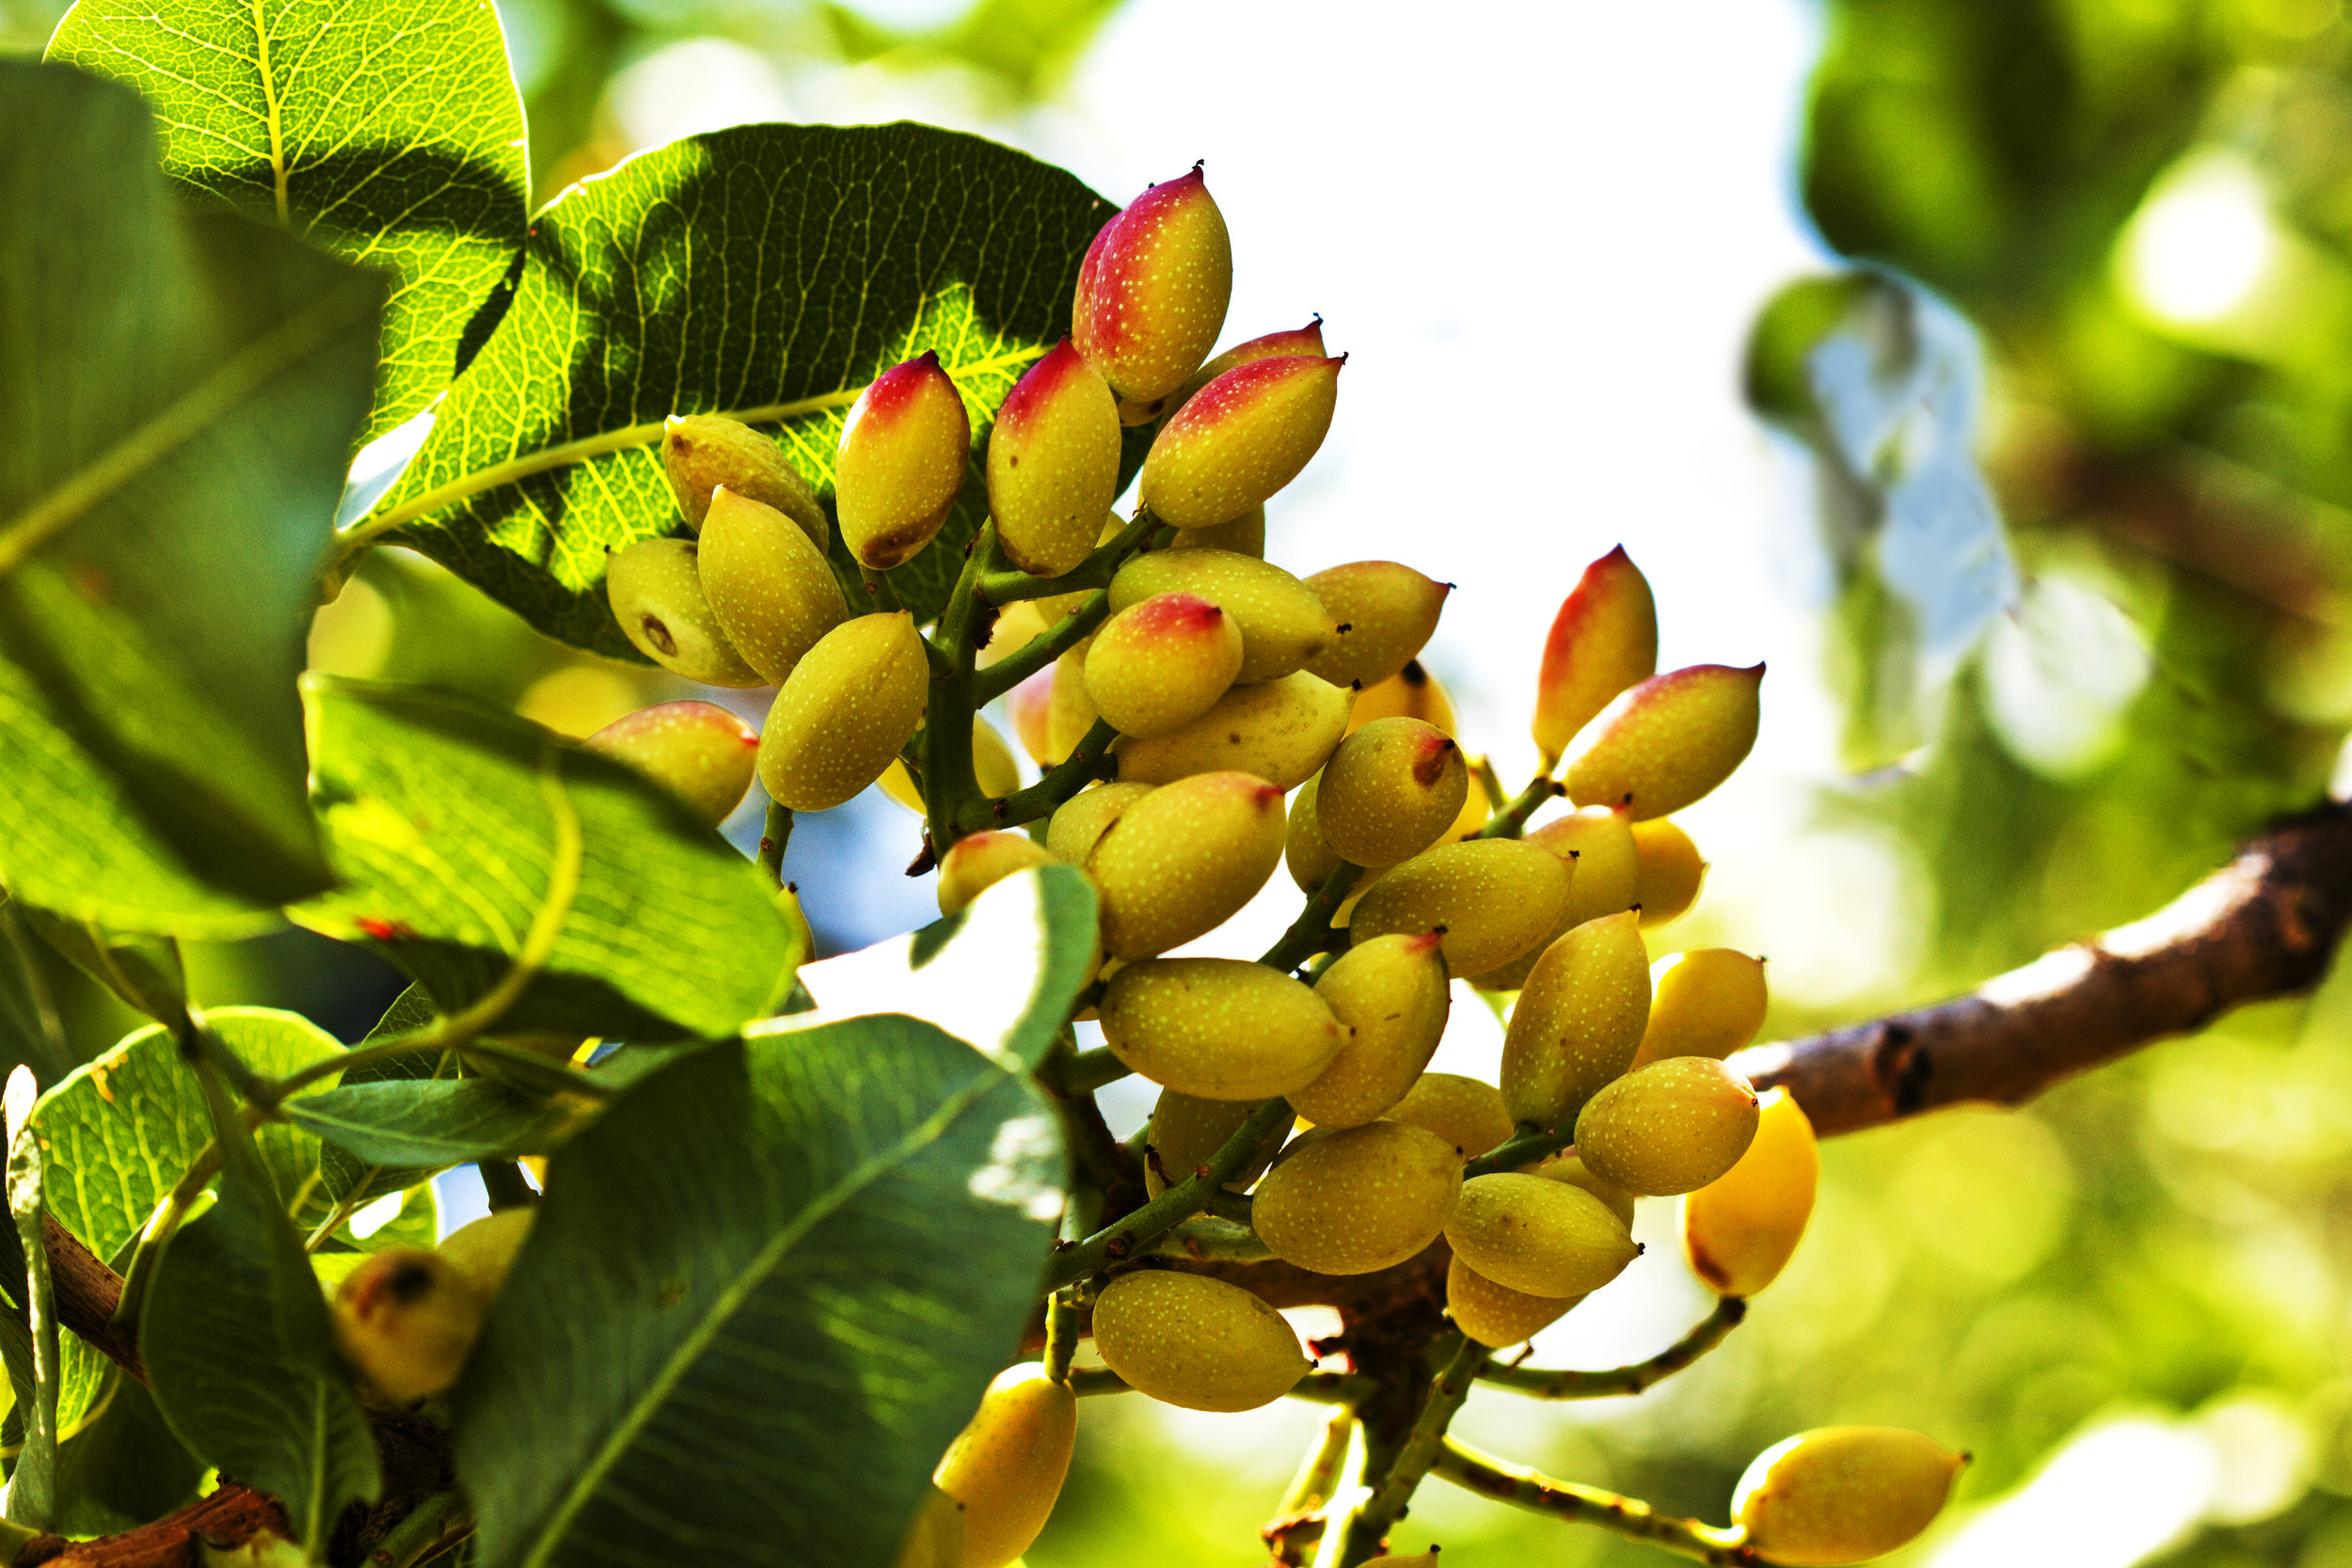 On the tree, a pistachio fruit. The seed, in its characteristic shell, or  By Paolo Galli from Wikimedia Commons